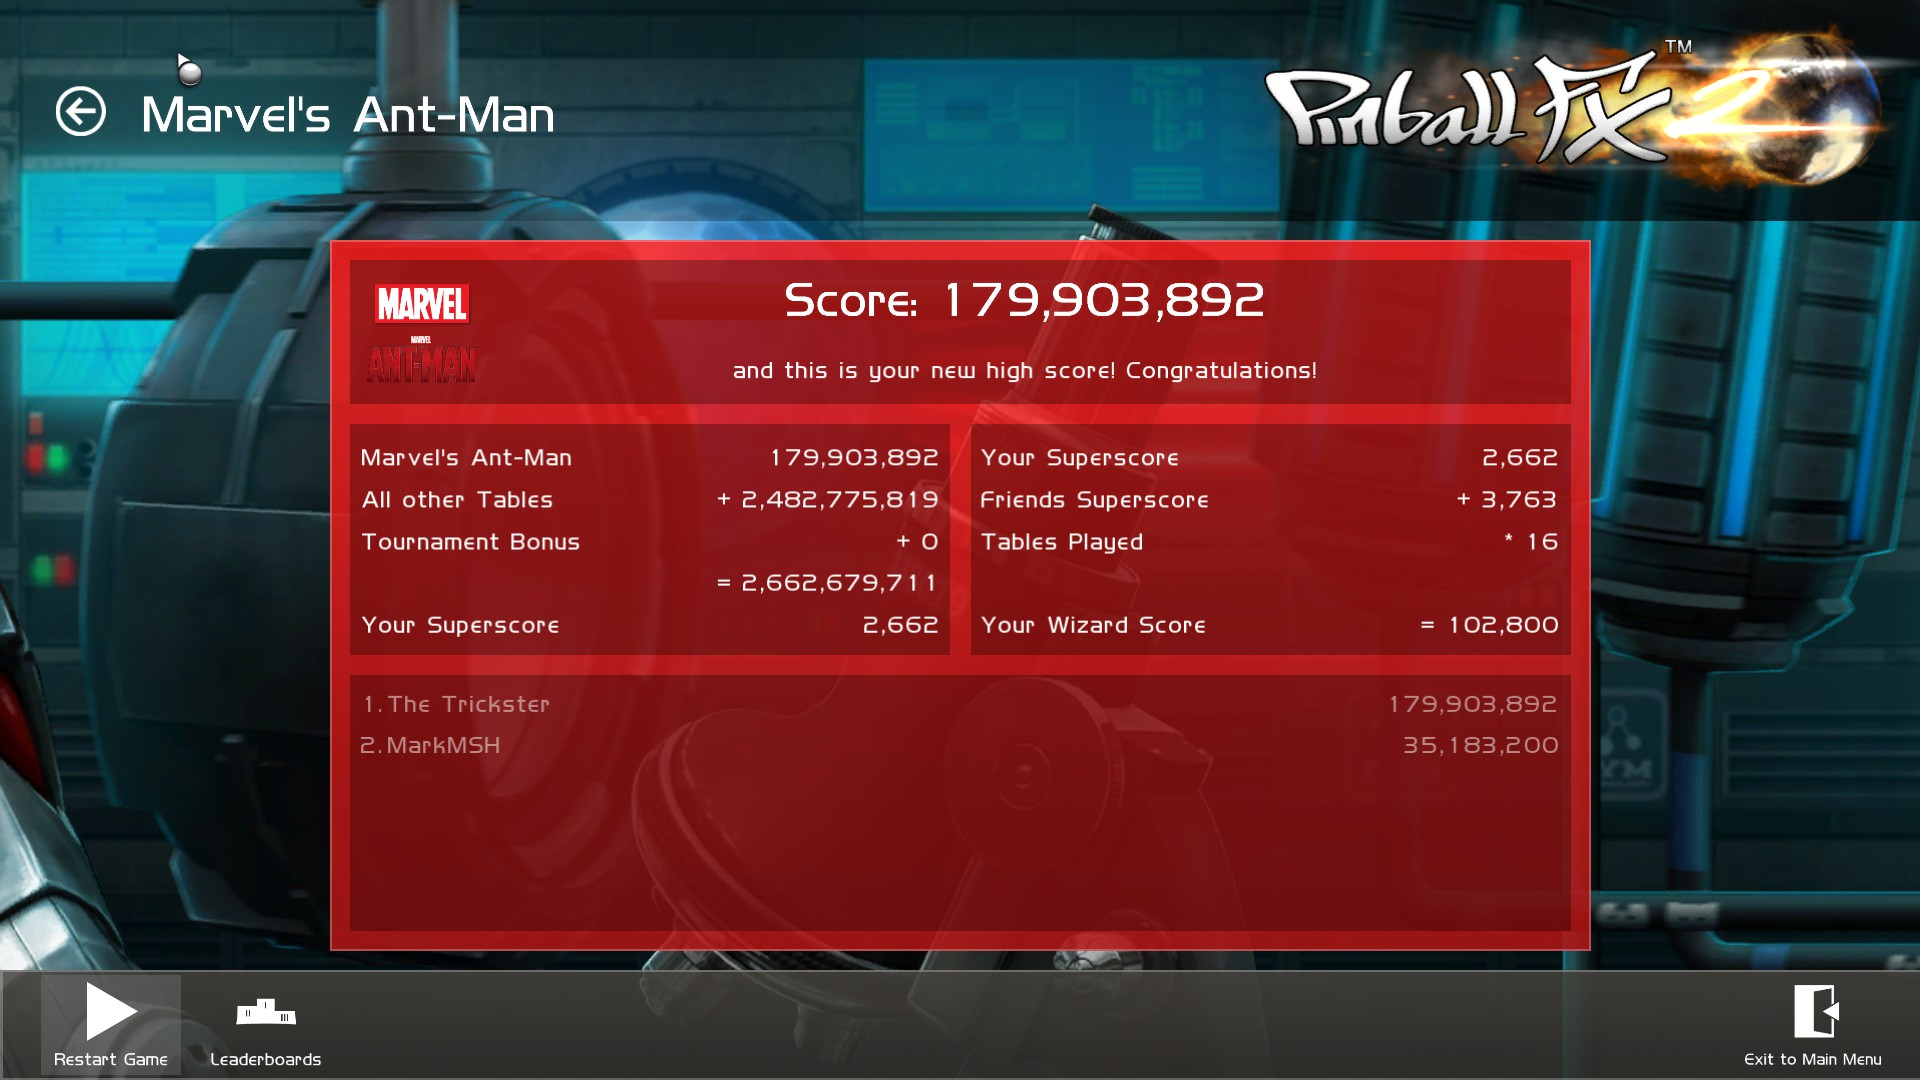 TheTrickster: Pinball FX 2: Ant-Man (PC) 179,903,892 points on 2016-01-07 06:59:31